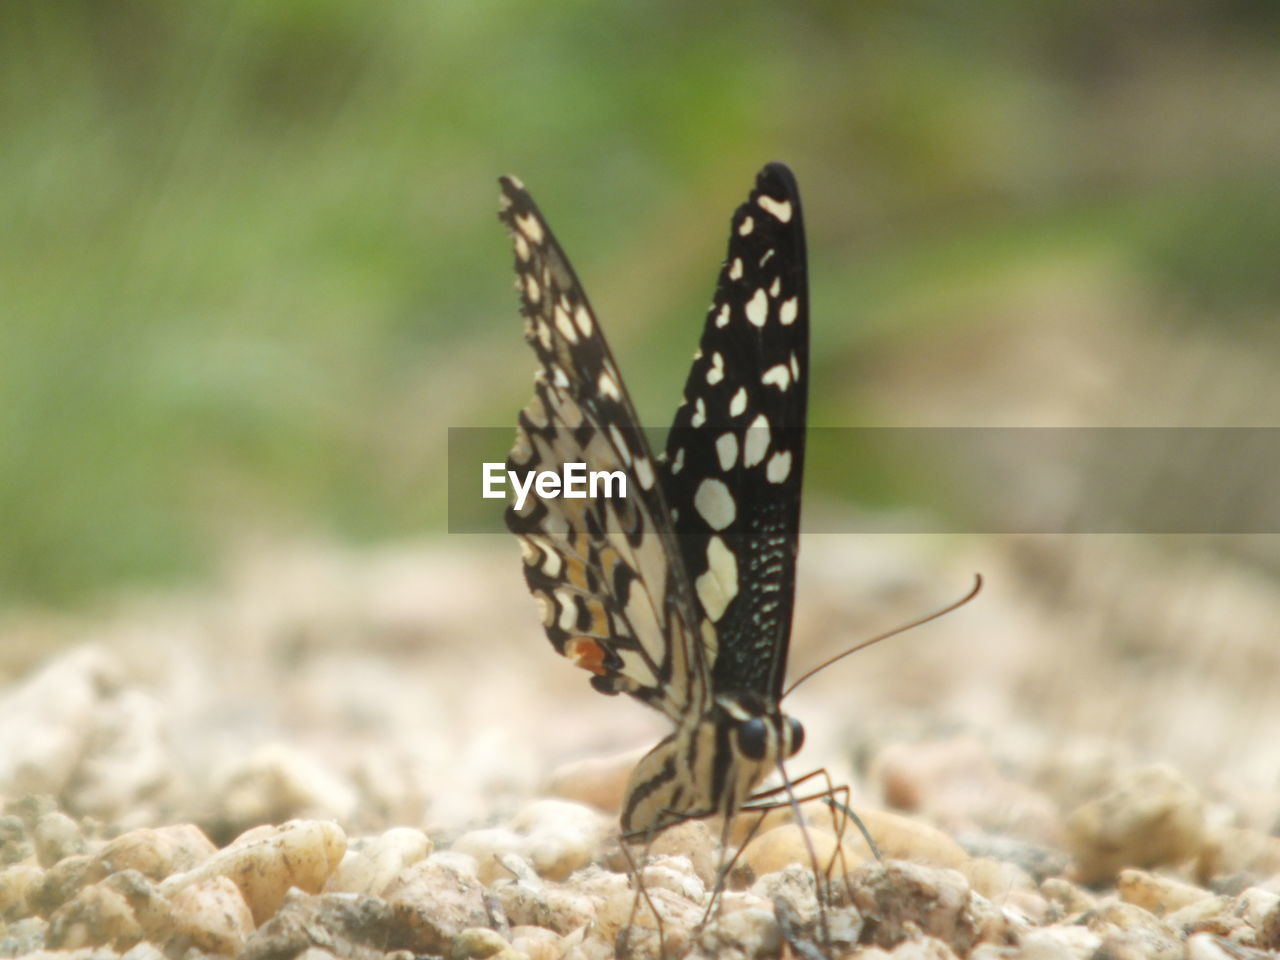 animals in the wild, animal wildlife, one animal, animal themes, animal, insect, animal wing, invertebrate, butterfly - insect, nature, beauty in nature, day, close-up, focus on foreground, no people, animal markings, outdoors, natural pattern, land, selective focus, butterfly